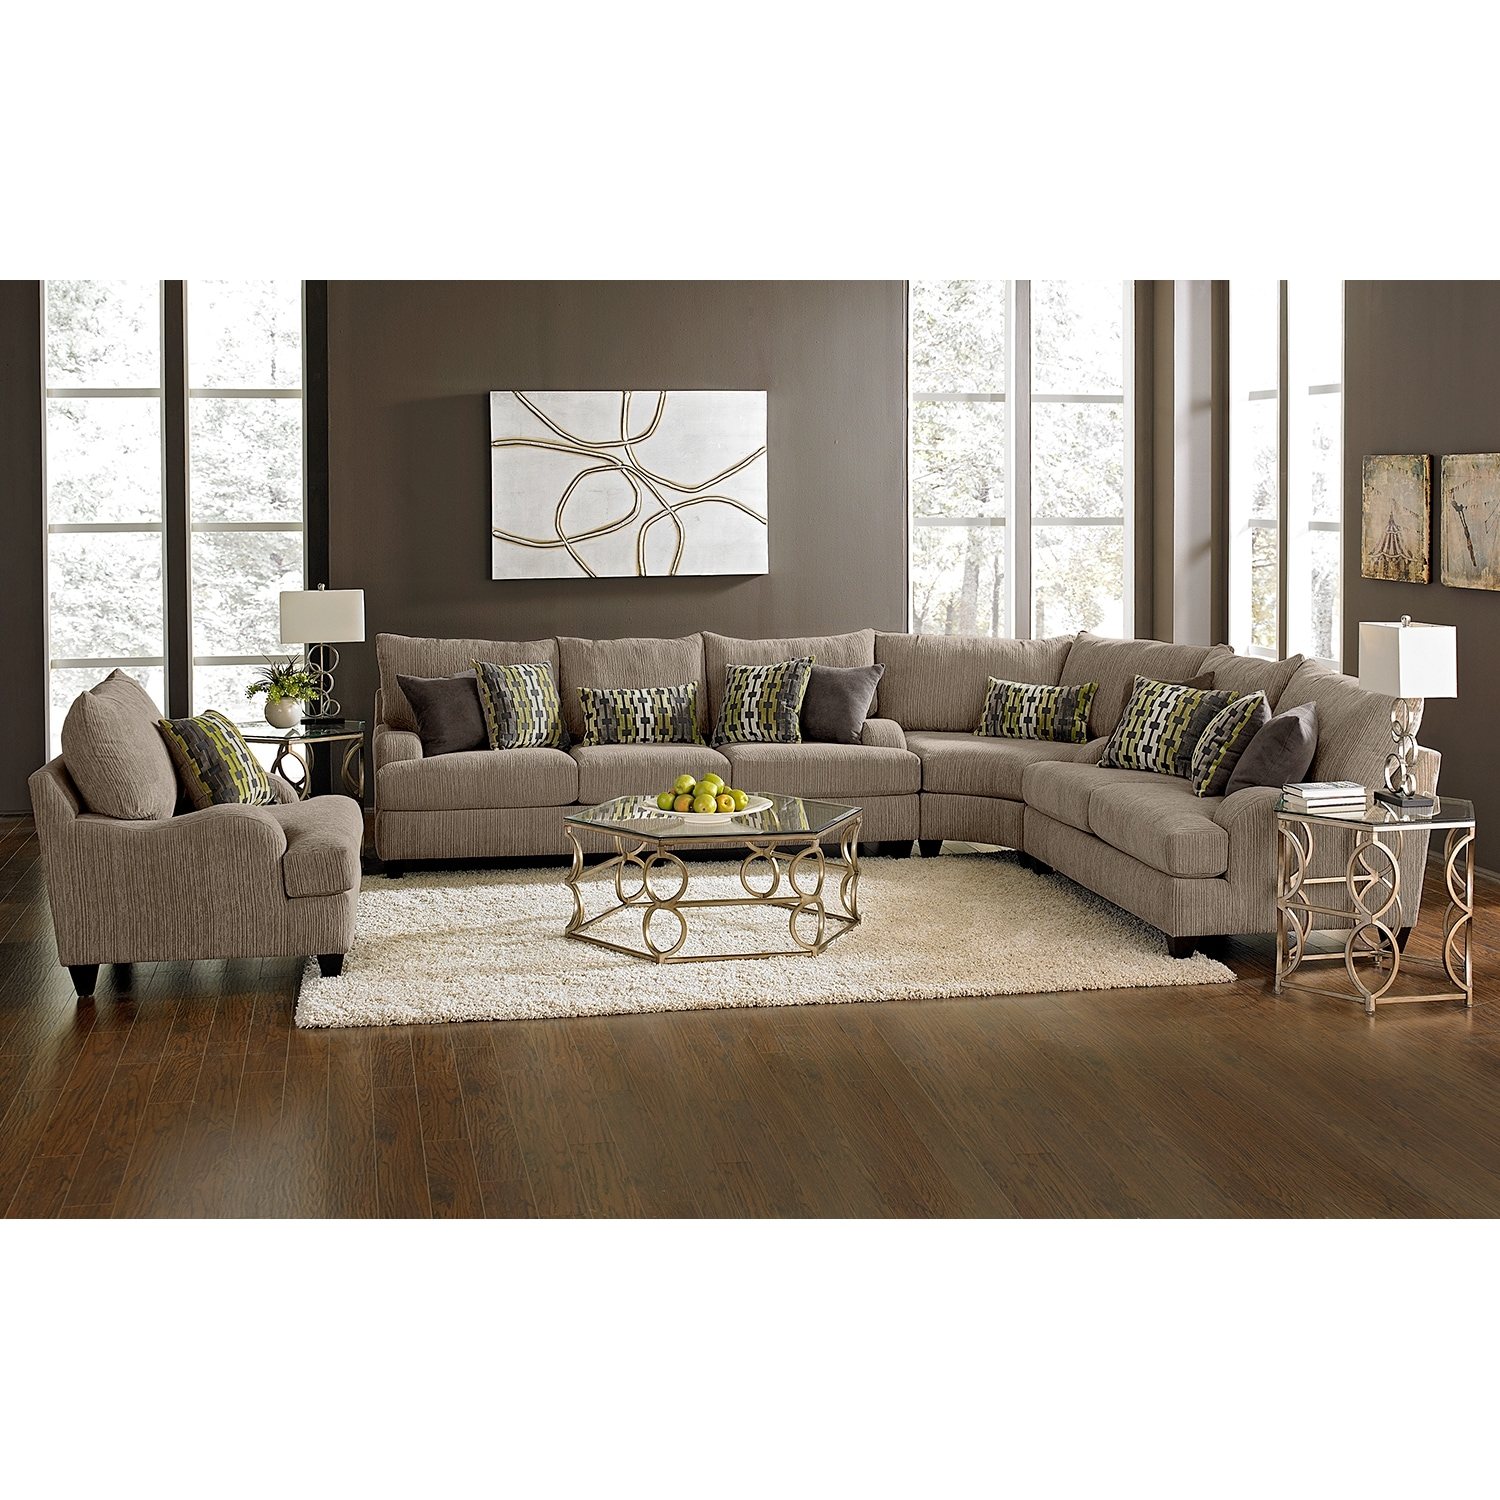 Hollister ii 3 piece sectional for 3 piece living room furniture